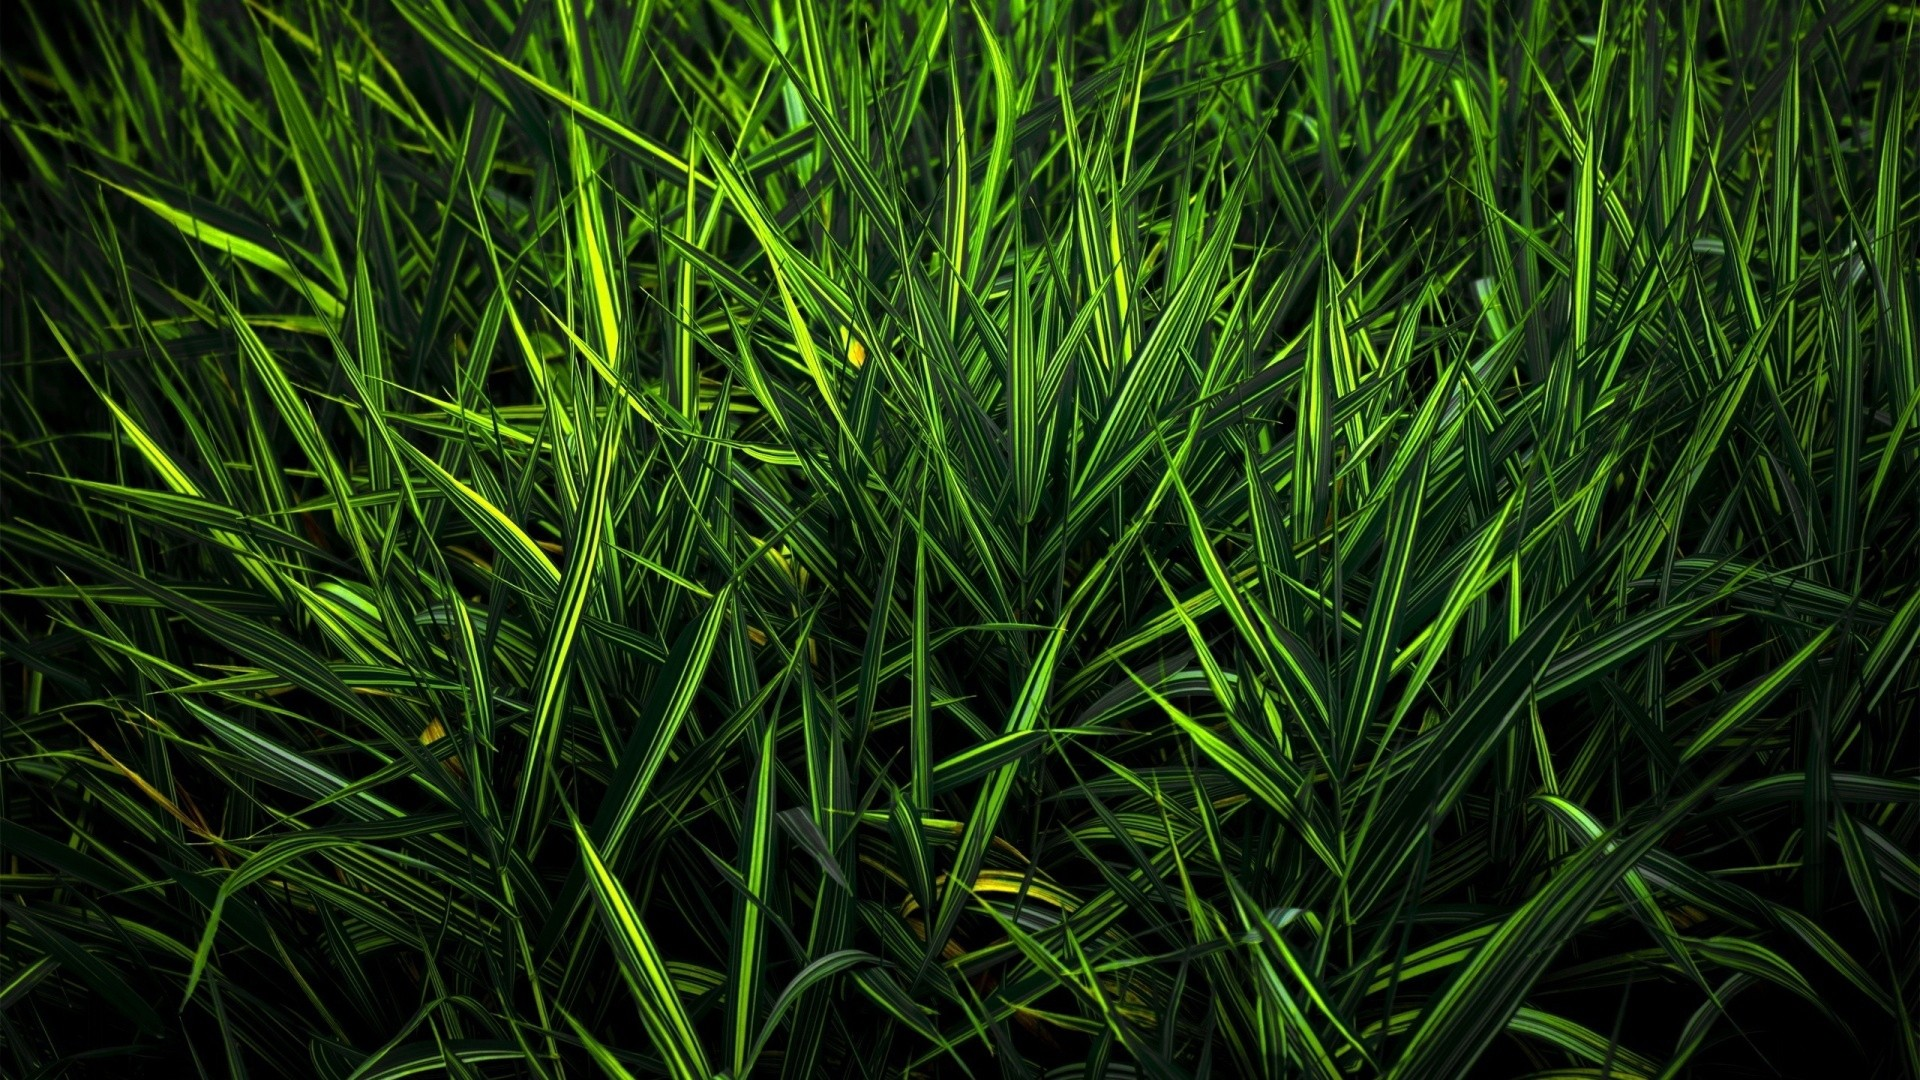 Seagrass hd desktop wallpaper